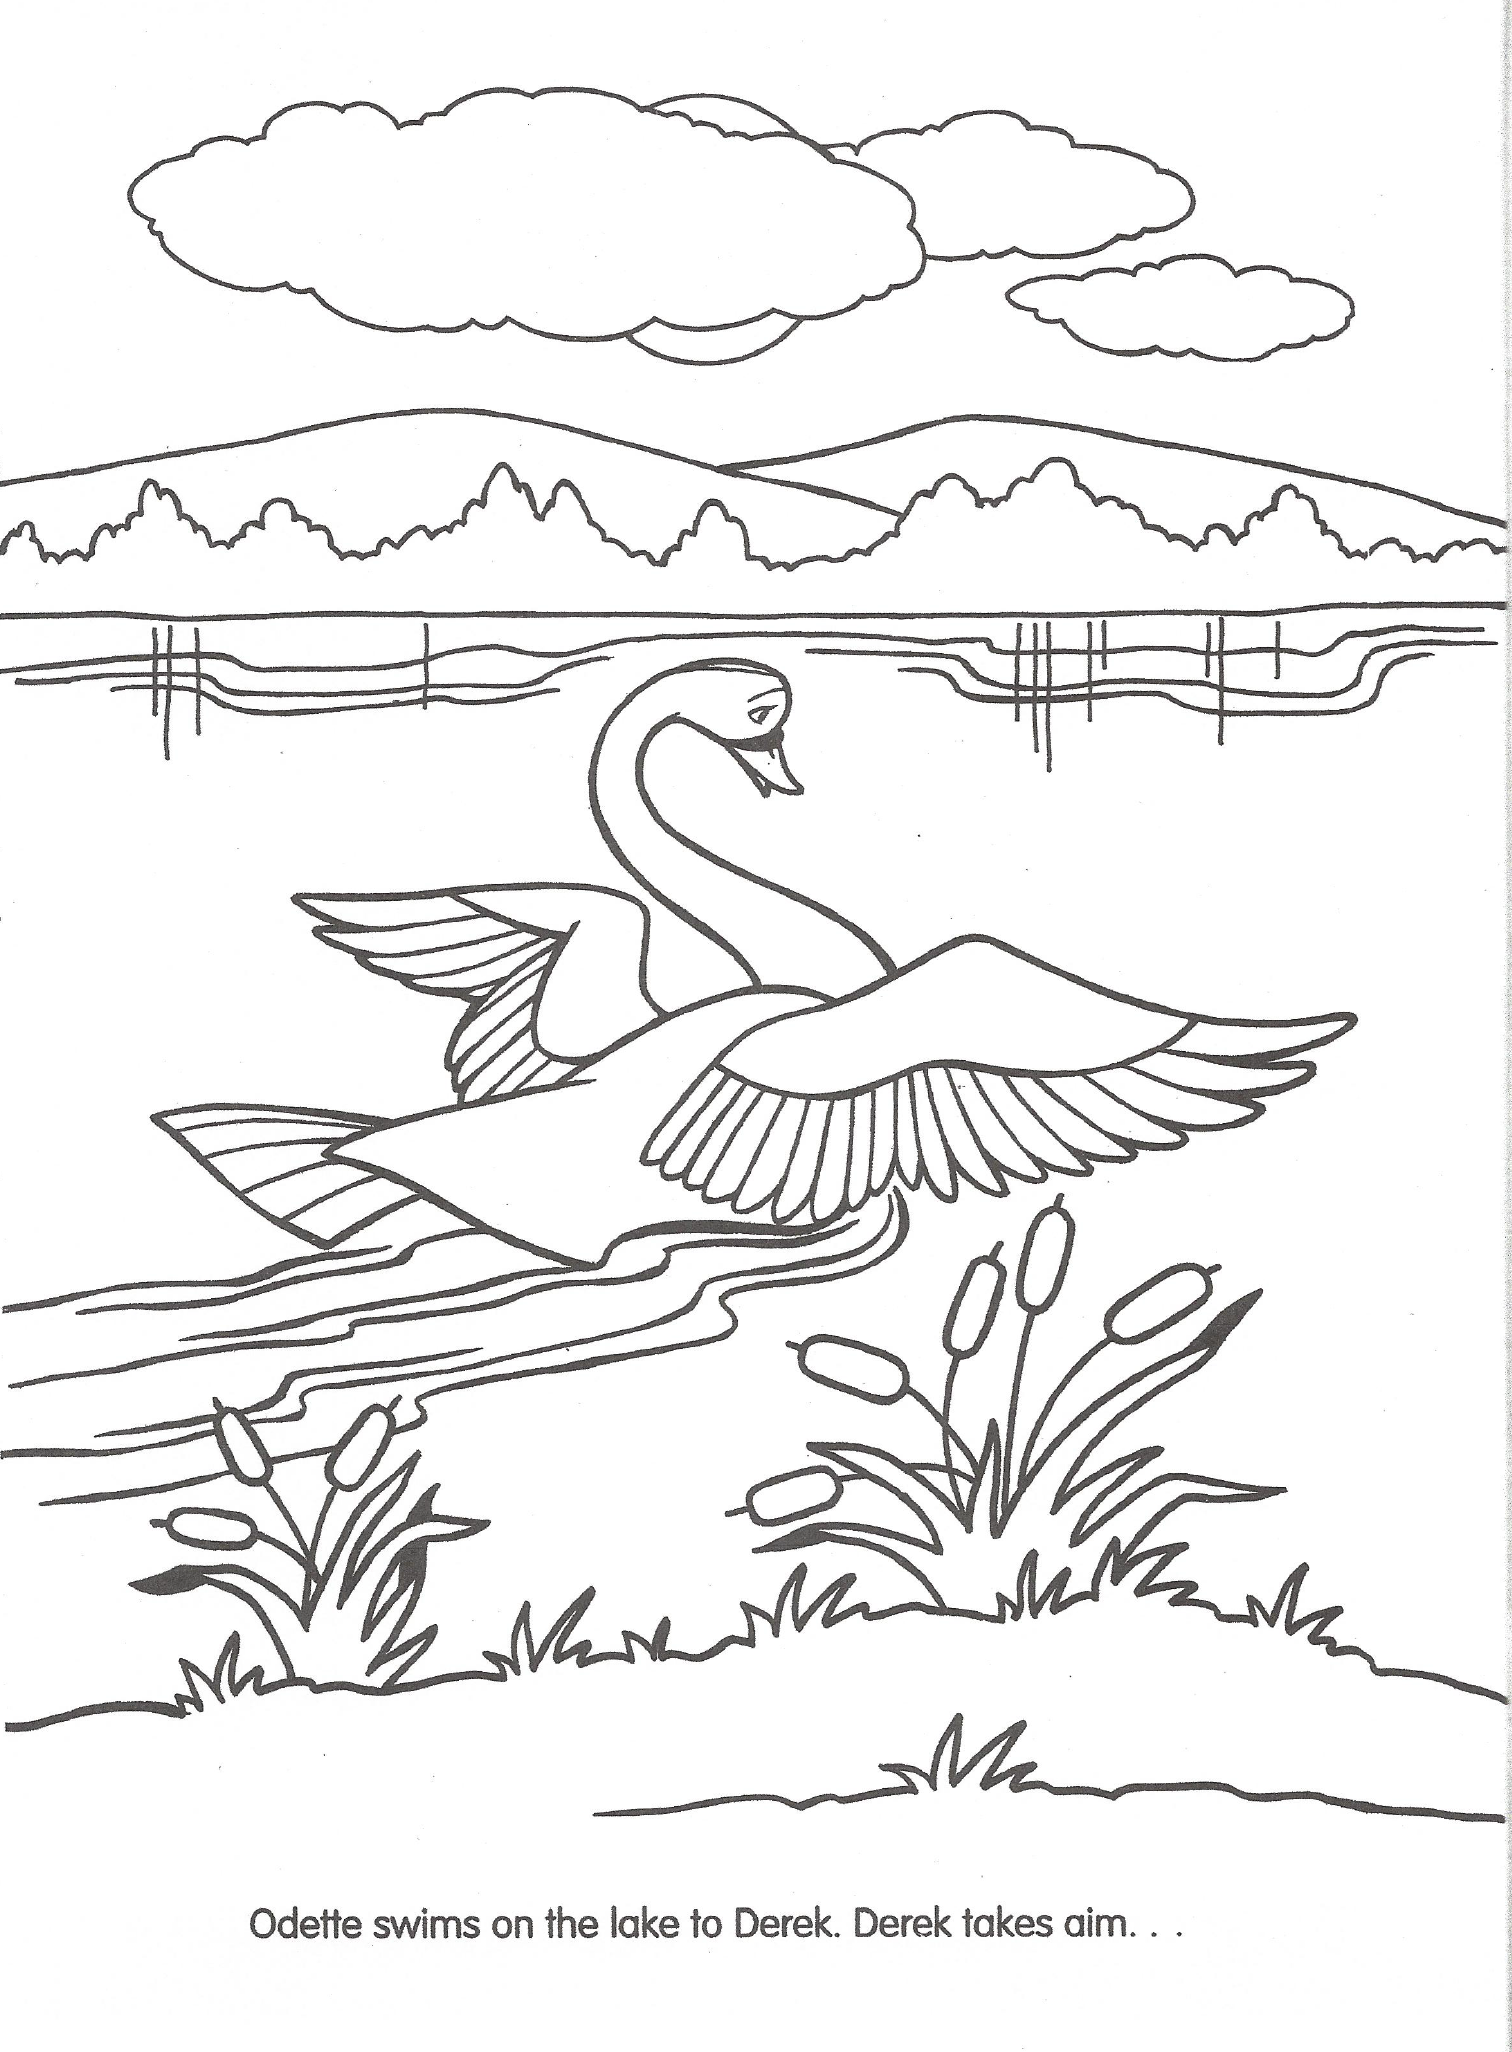 Swan princess coloring pages free - Swan Princess Coloring Pages Best 2017